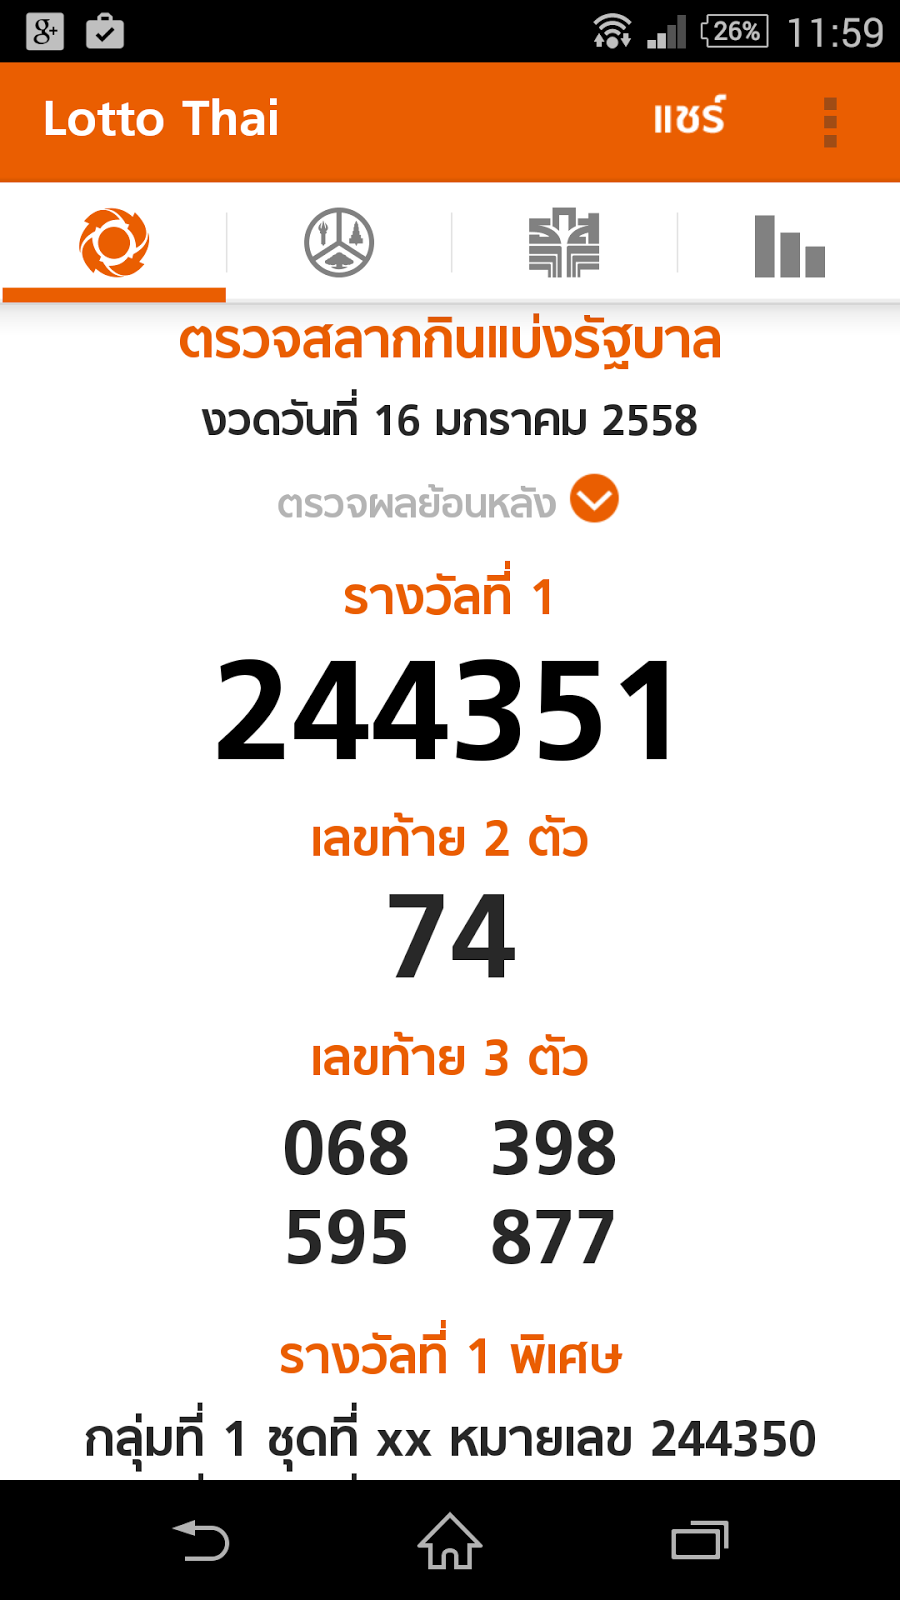 Thai Lotto Tip 001: Thai Lottery Result 16-01-2015